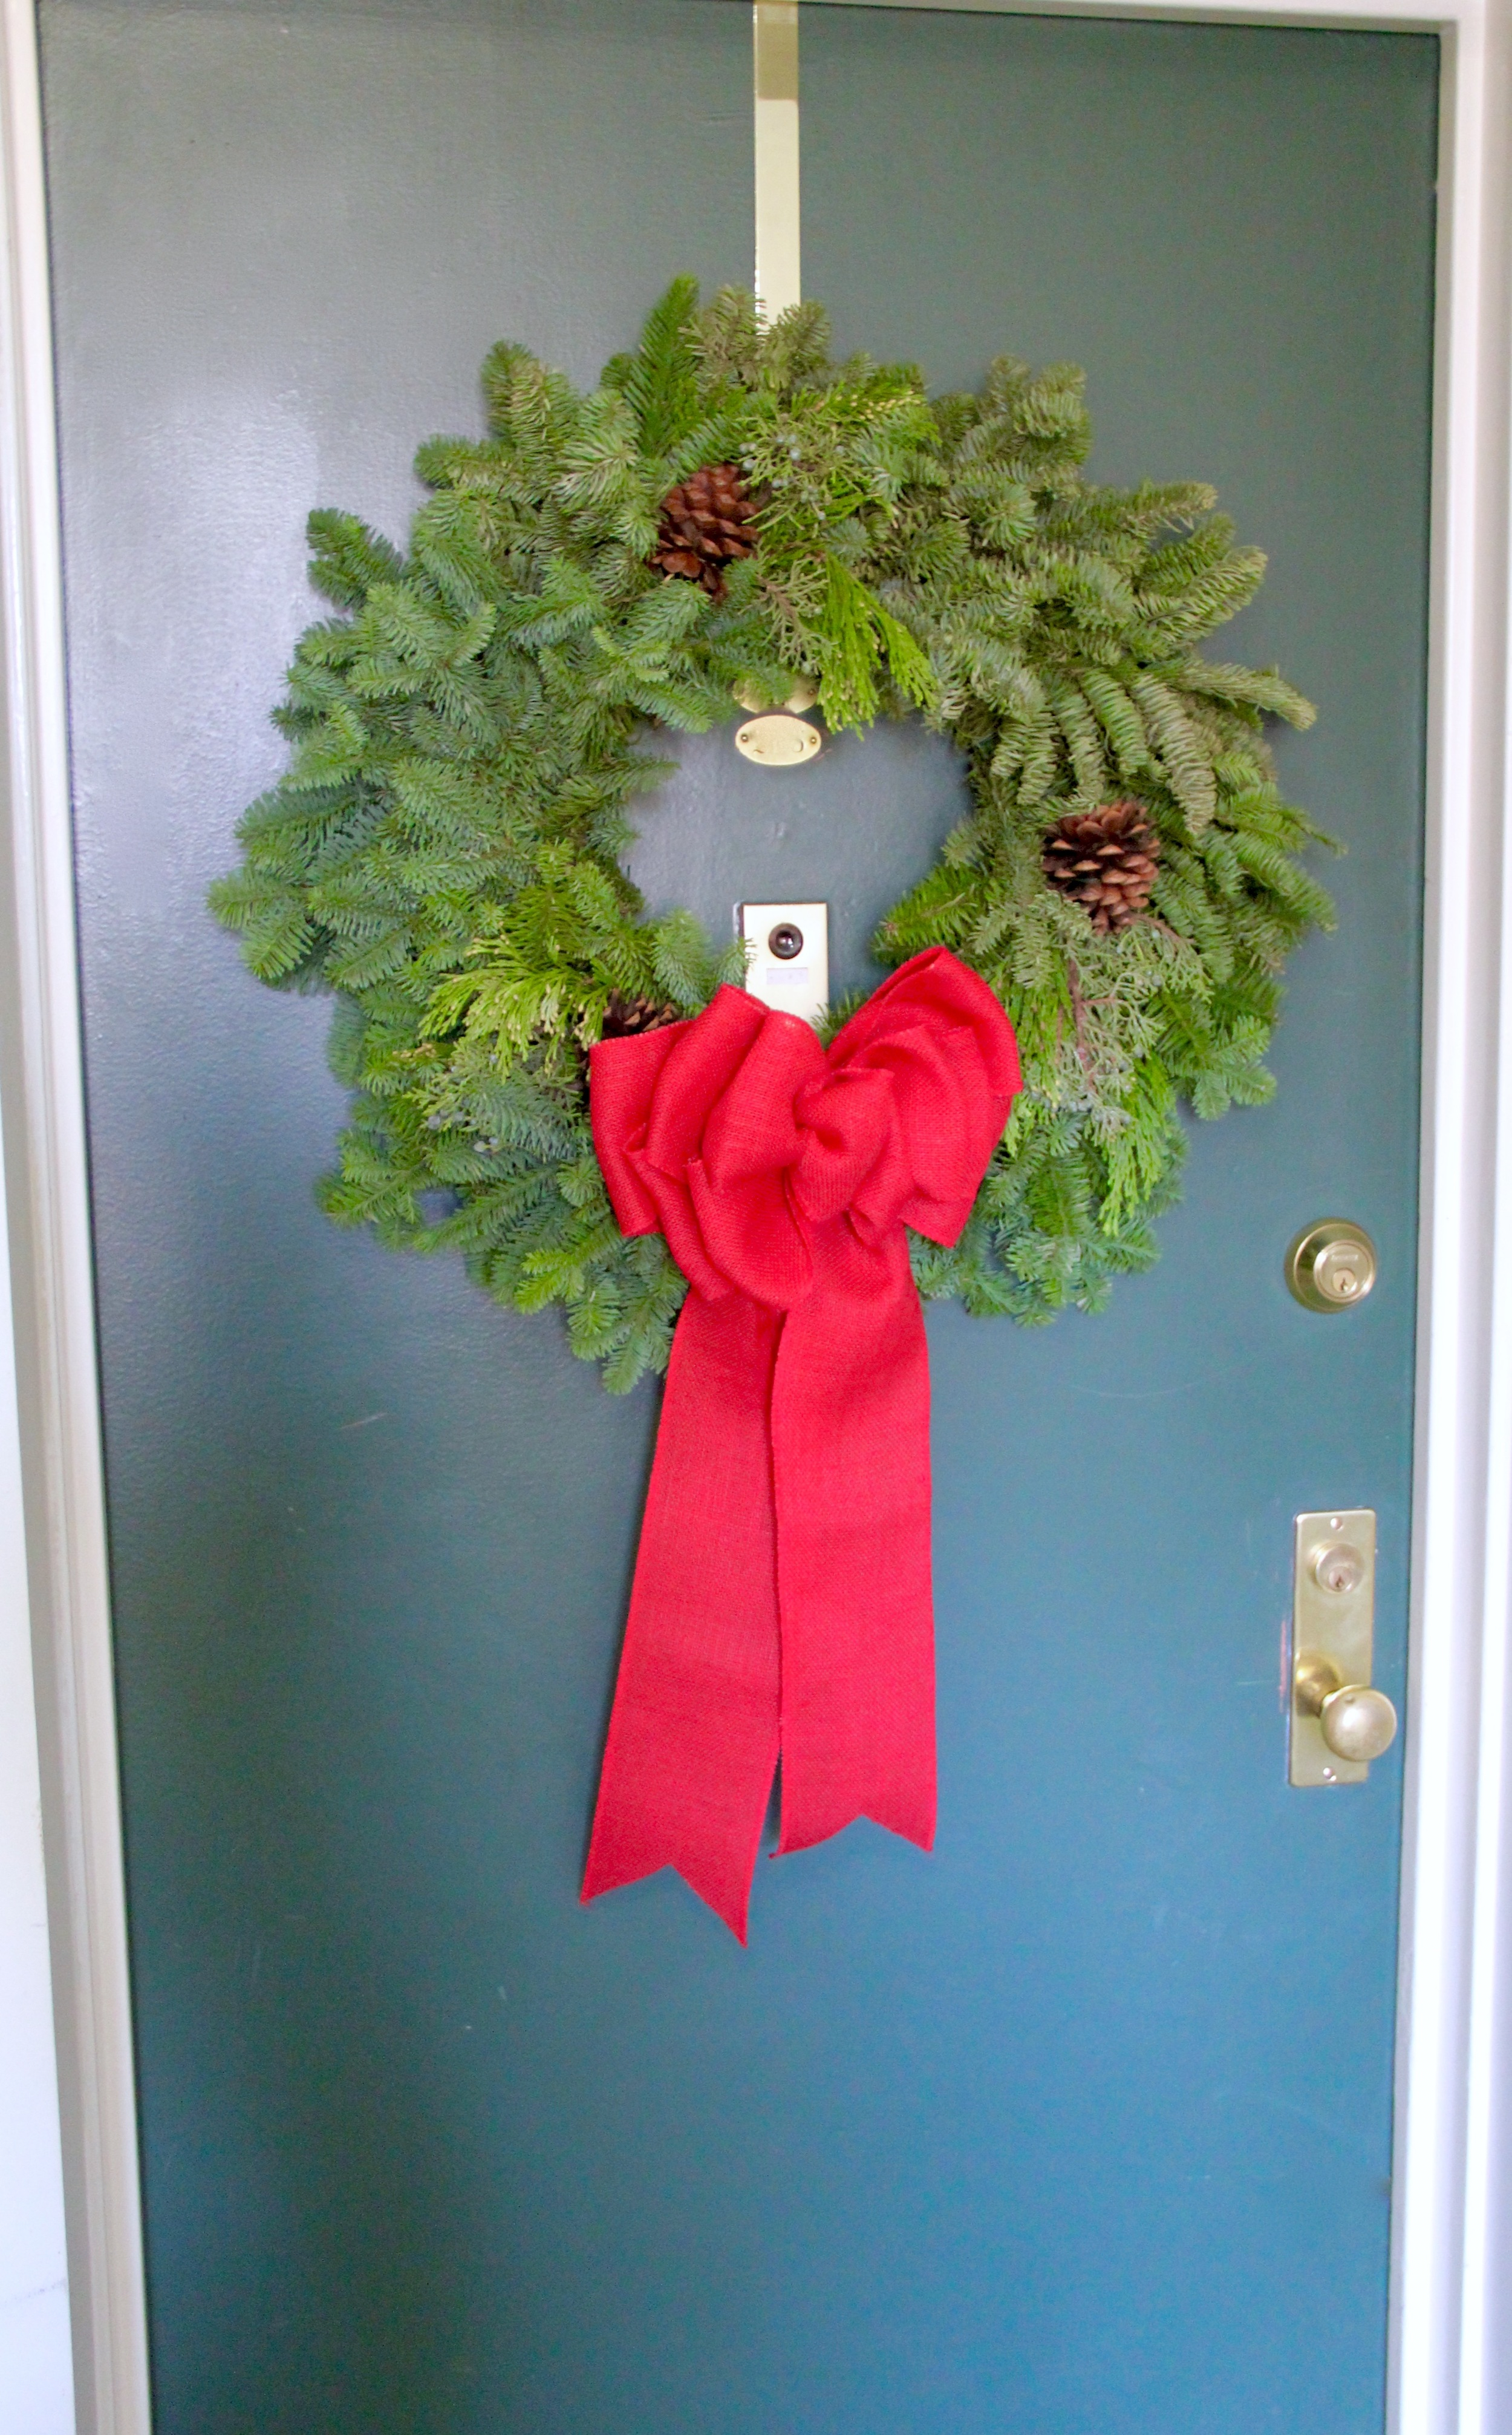 Costco Wreath.jpg